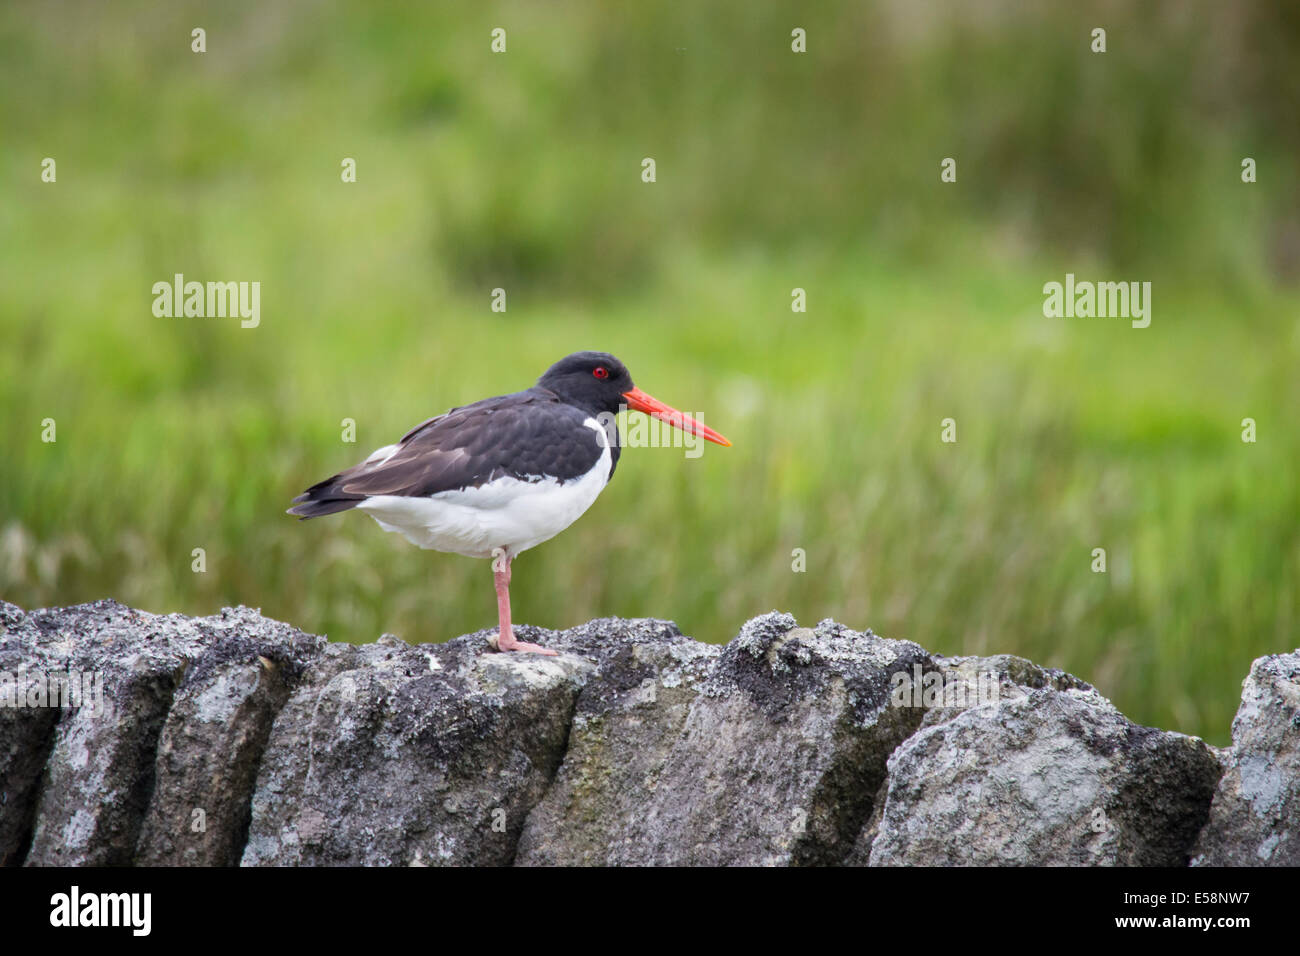 An Oystercatcher sat on a wall in the North Pennines, UK. - Stock Image